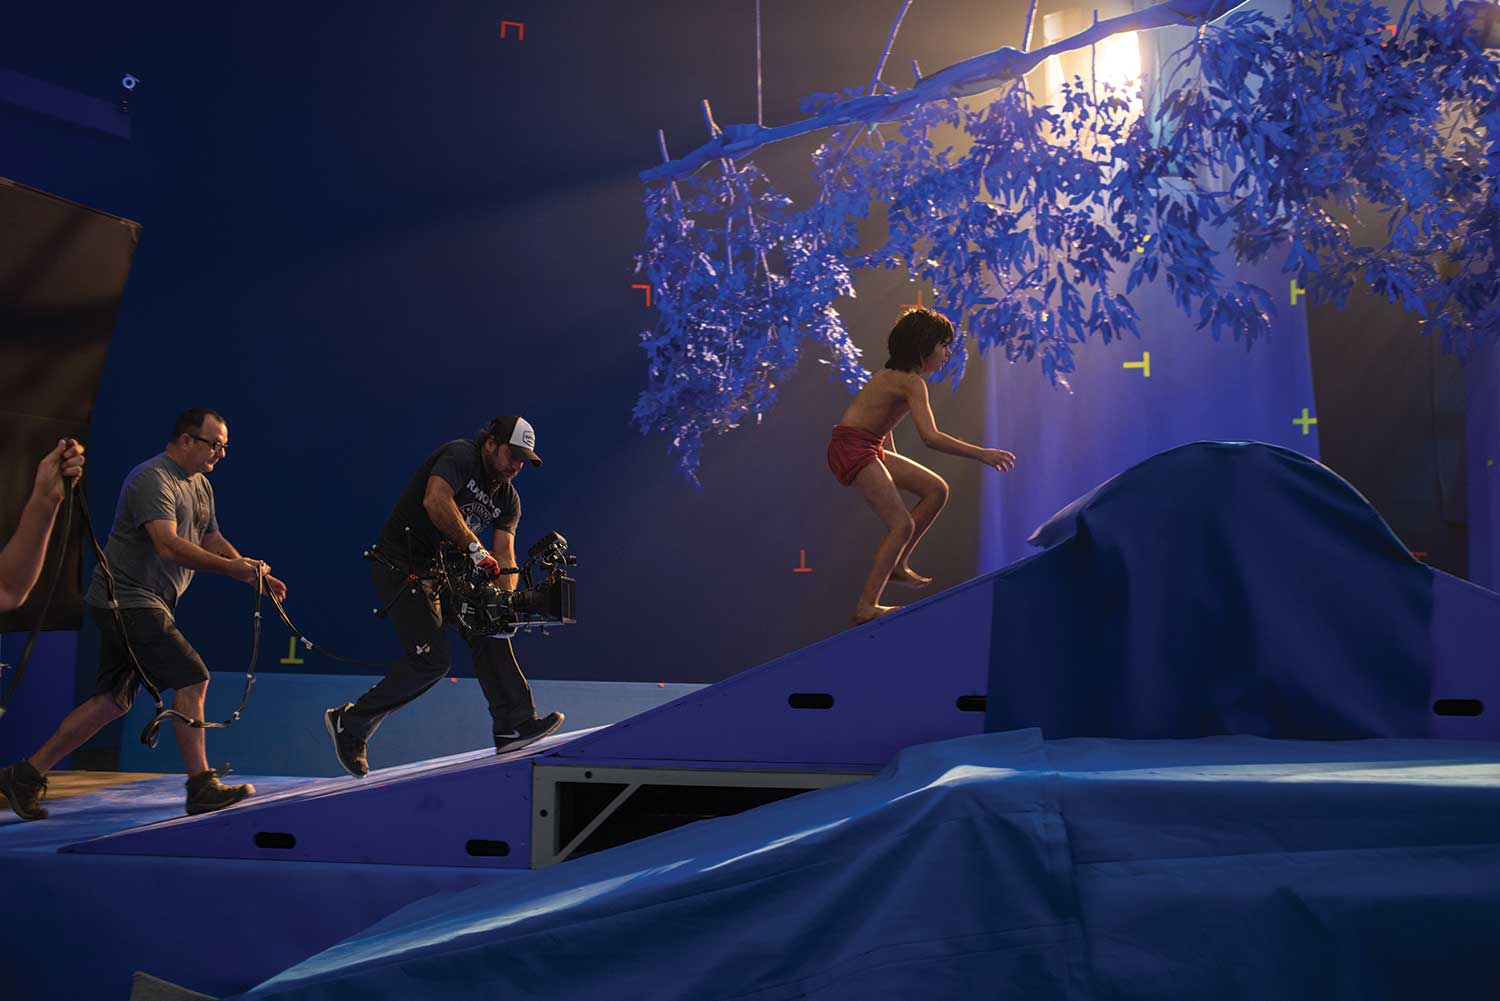 Above: The ARRI Alexa Studio camera follows Mowgli on-set. Simulcam gives the live production crew an idea of where the CG is and the lighting design has already been set through extremely photo realistic software in Maya or Renderman.